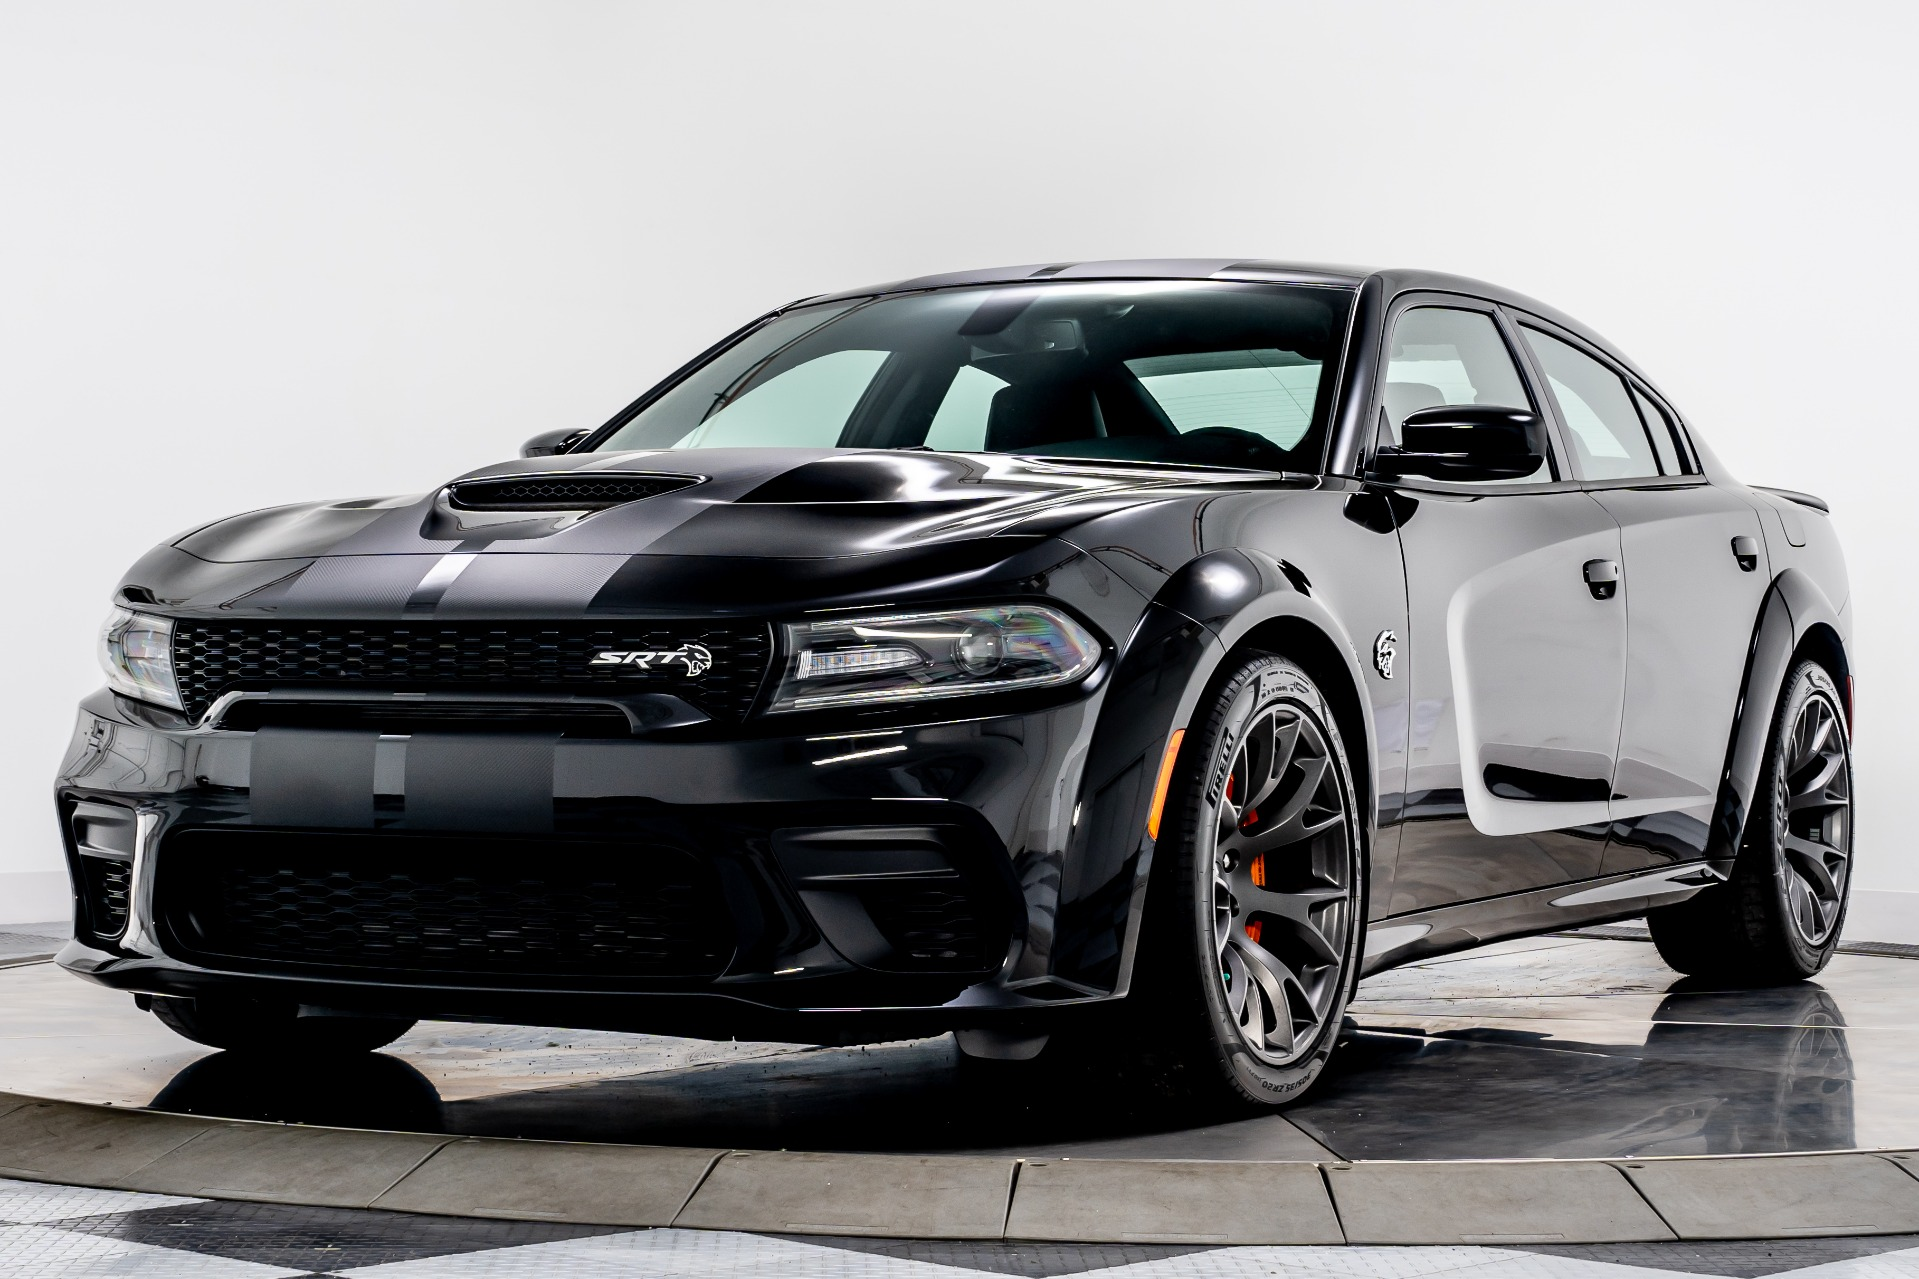 Used 2020 Dodge Charger Srt Hellcat Widebody For Sale Sold Marshall Goldman Motor Sales Stock W21270